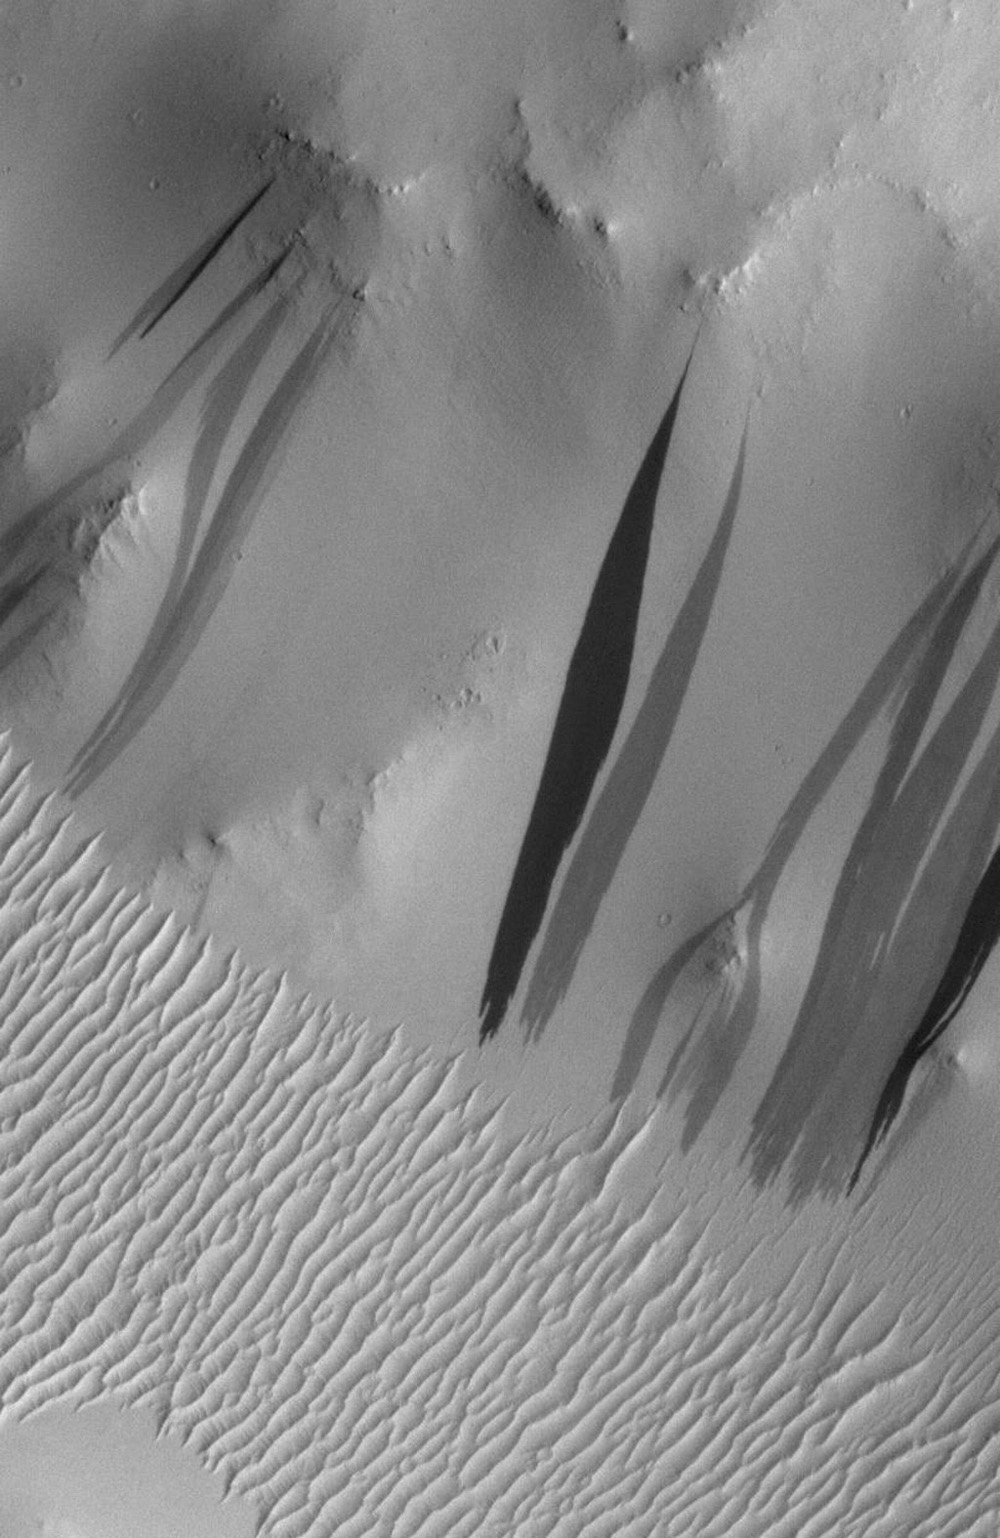 Light-toned deposits forming in two gully sites in Terra Sirenum on Mars during NASA's Mars Global Surveyor mission in the 1999-2005 period are considered to be a result of sediment transport by a fluid with the physical properties of liquid water.